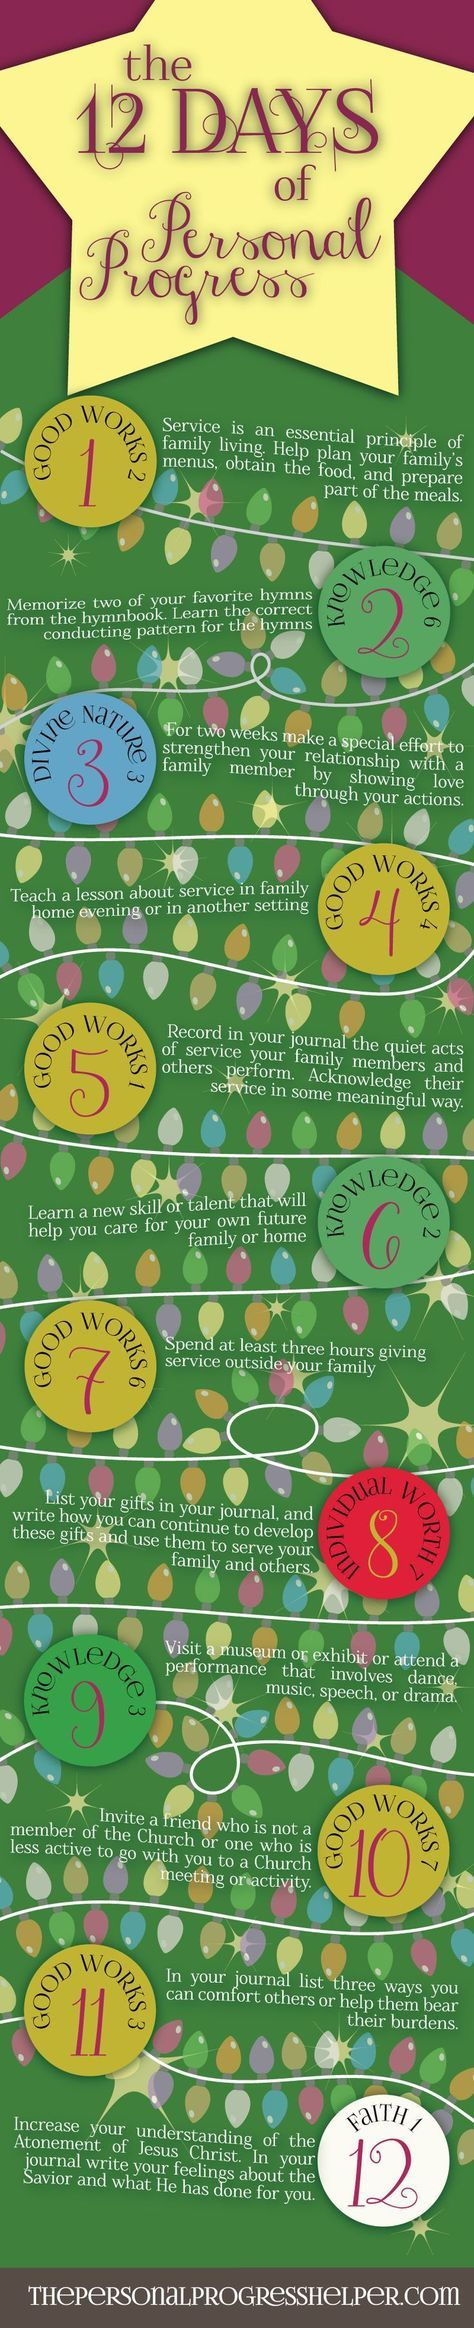 12 Days of Personal Progress Infographic--just in time for the holidays!: